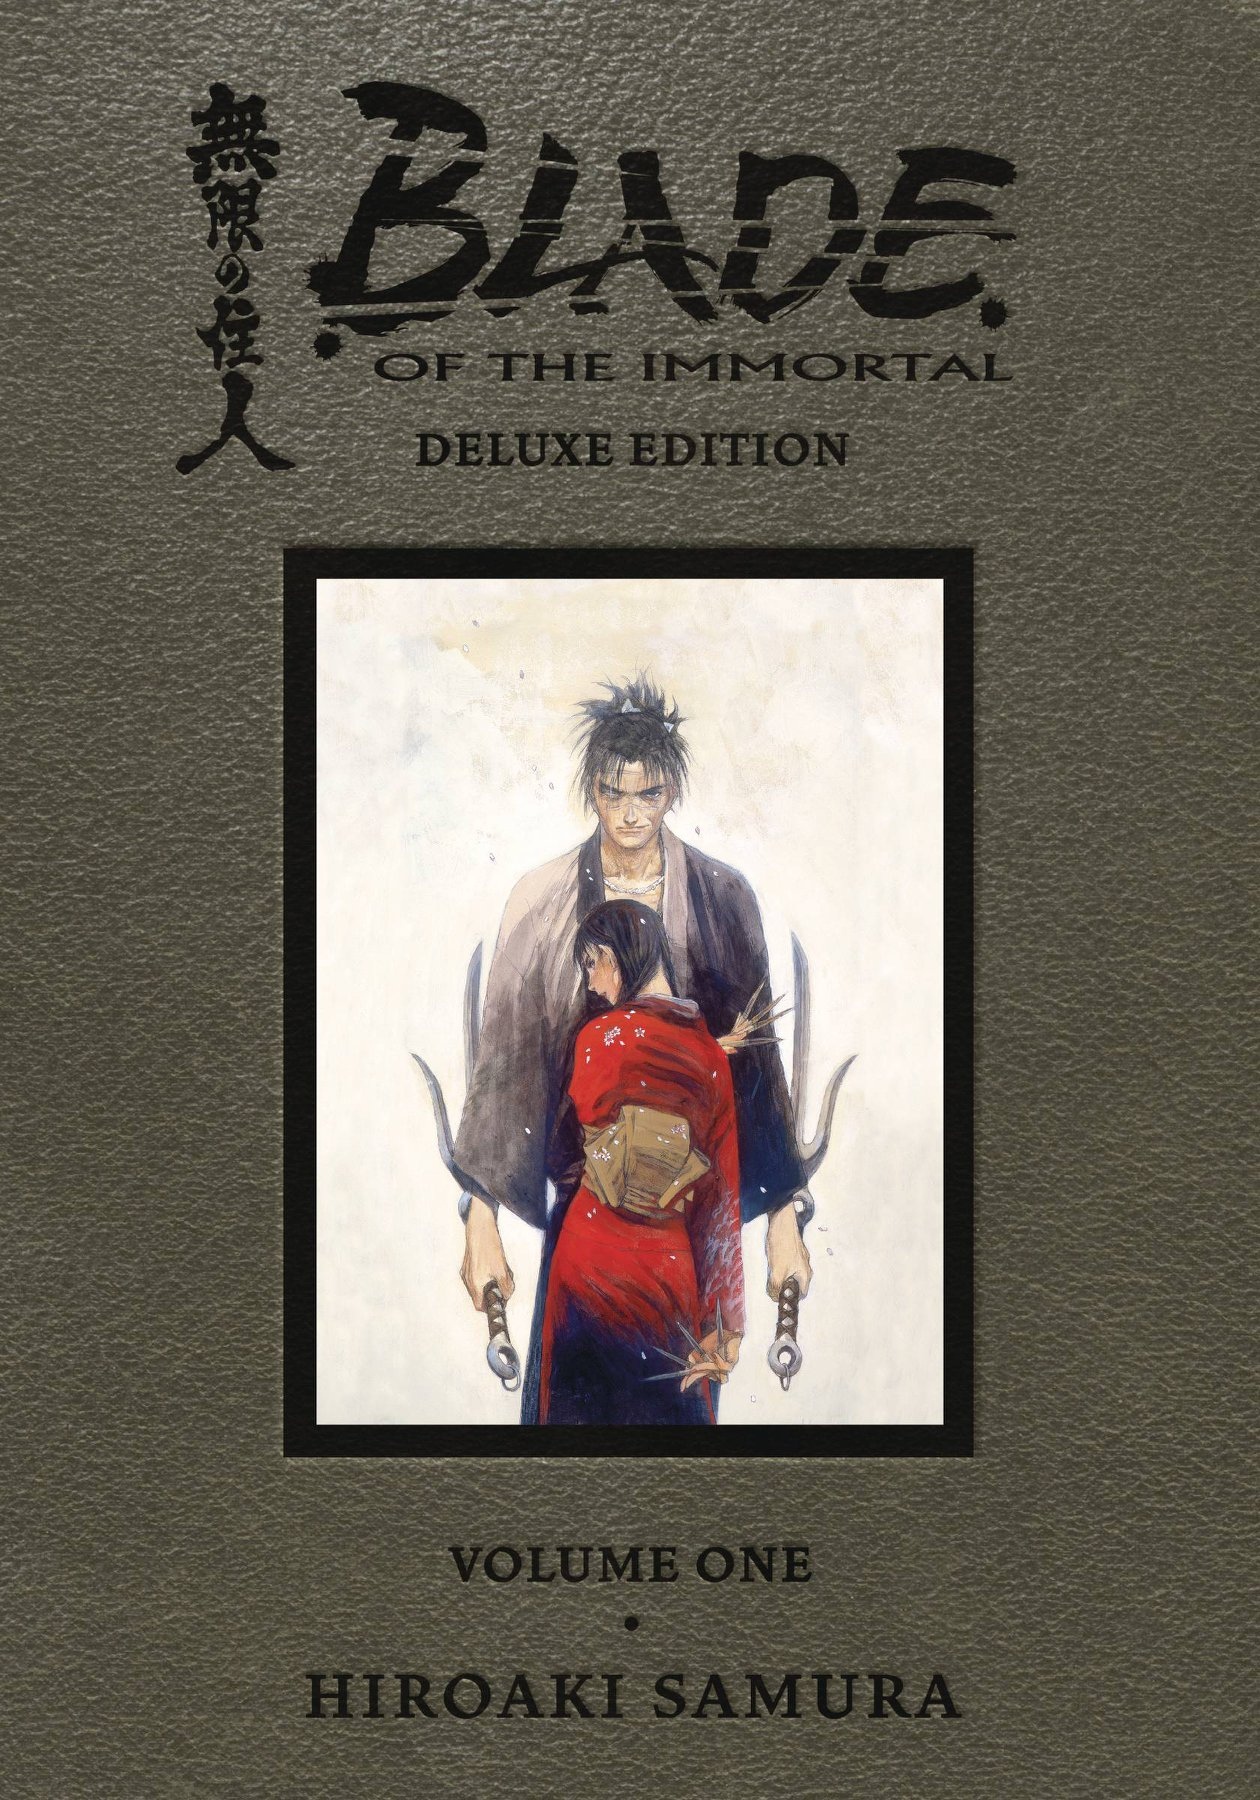 BLADE OF THE IMMORTAL DELUXE EDITION HC VOL 01